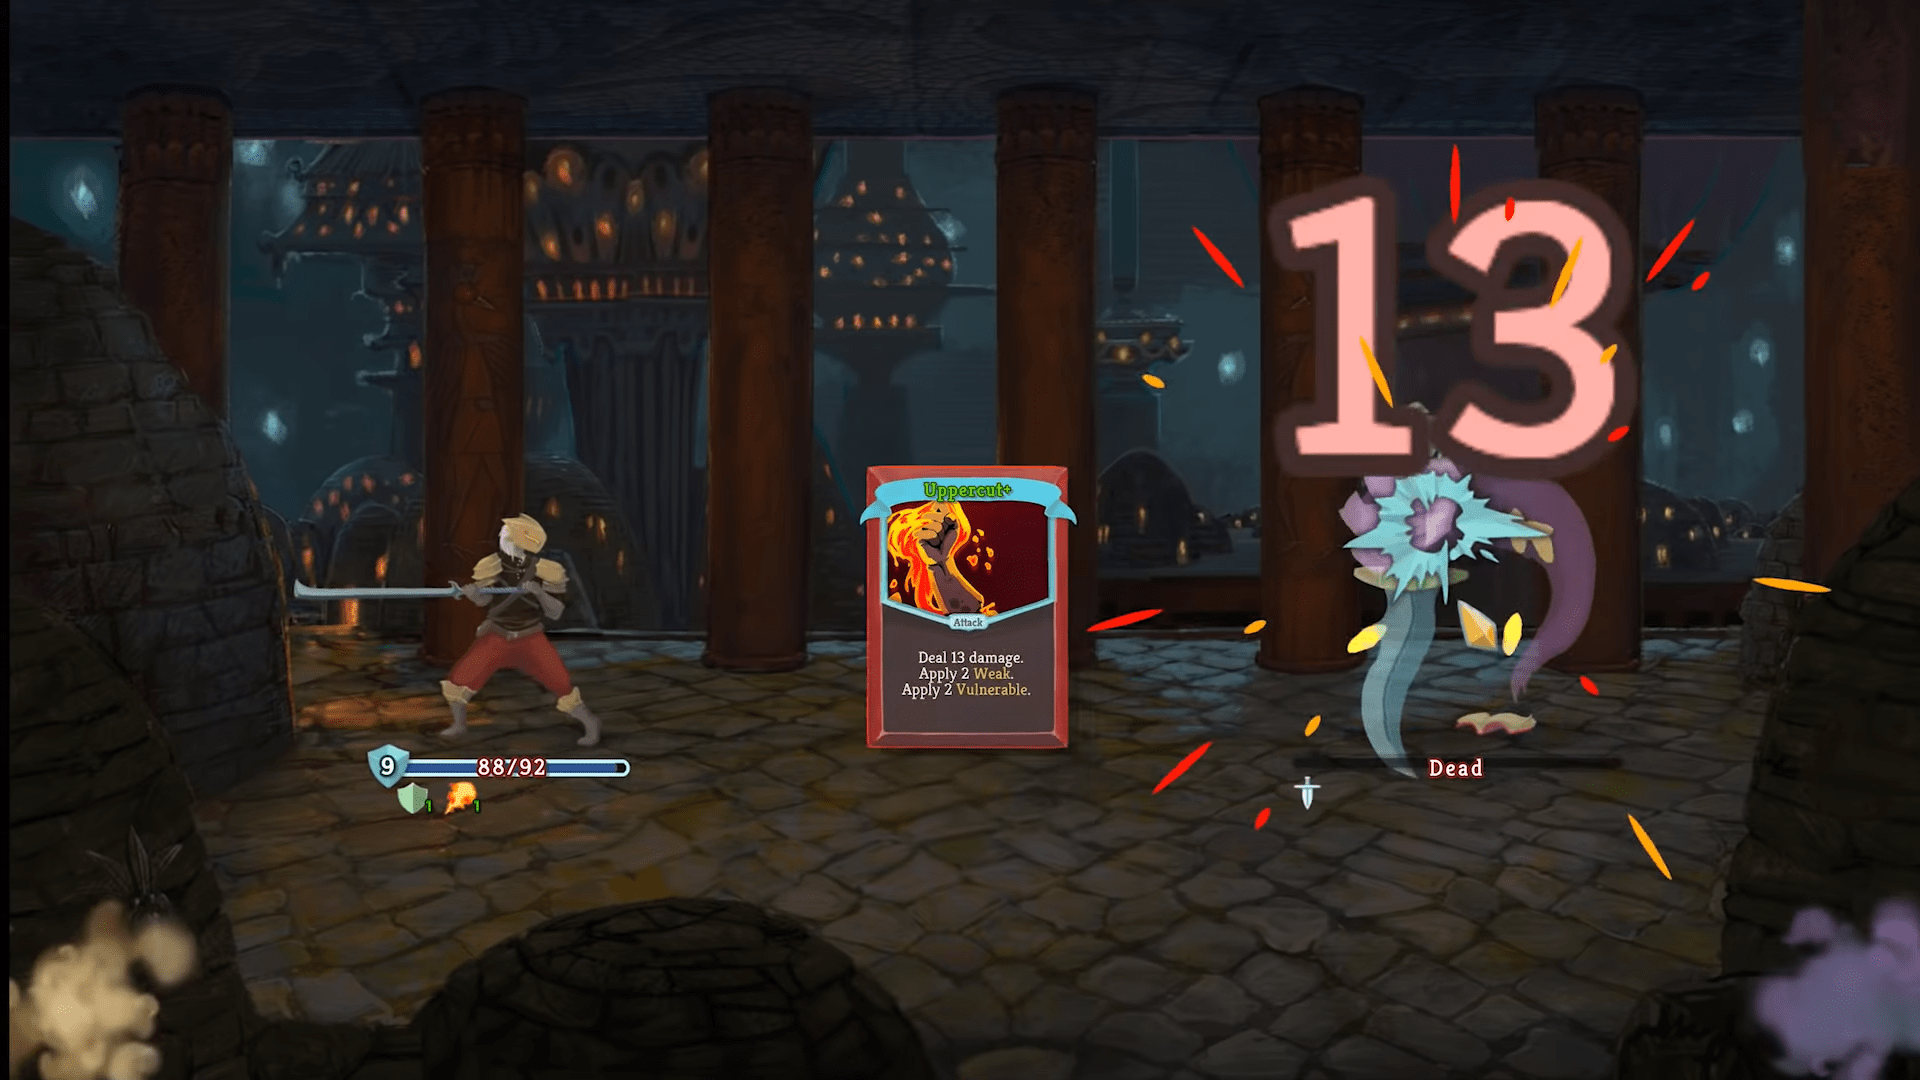 Slay The Spire Receives Long-Awaited 2.0 Patch, Bringing A New Character And Features